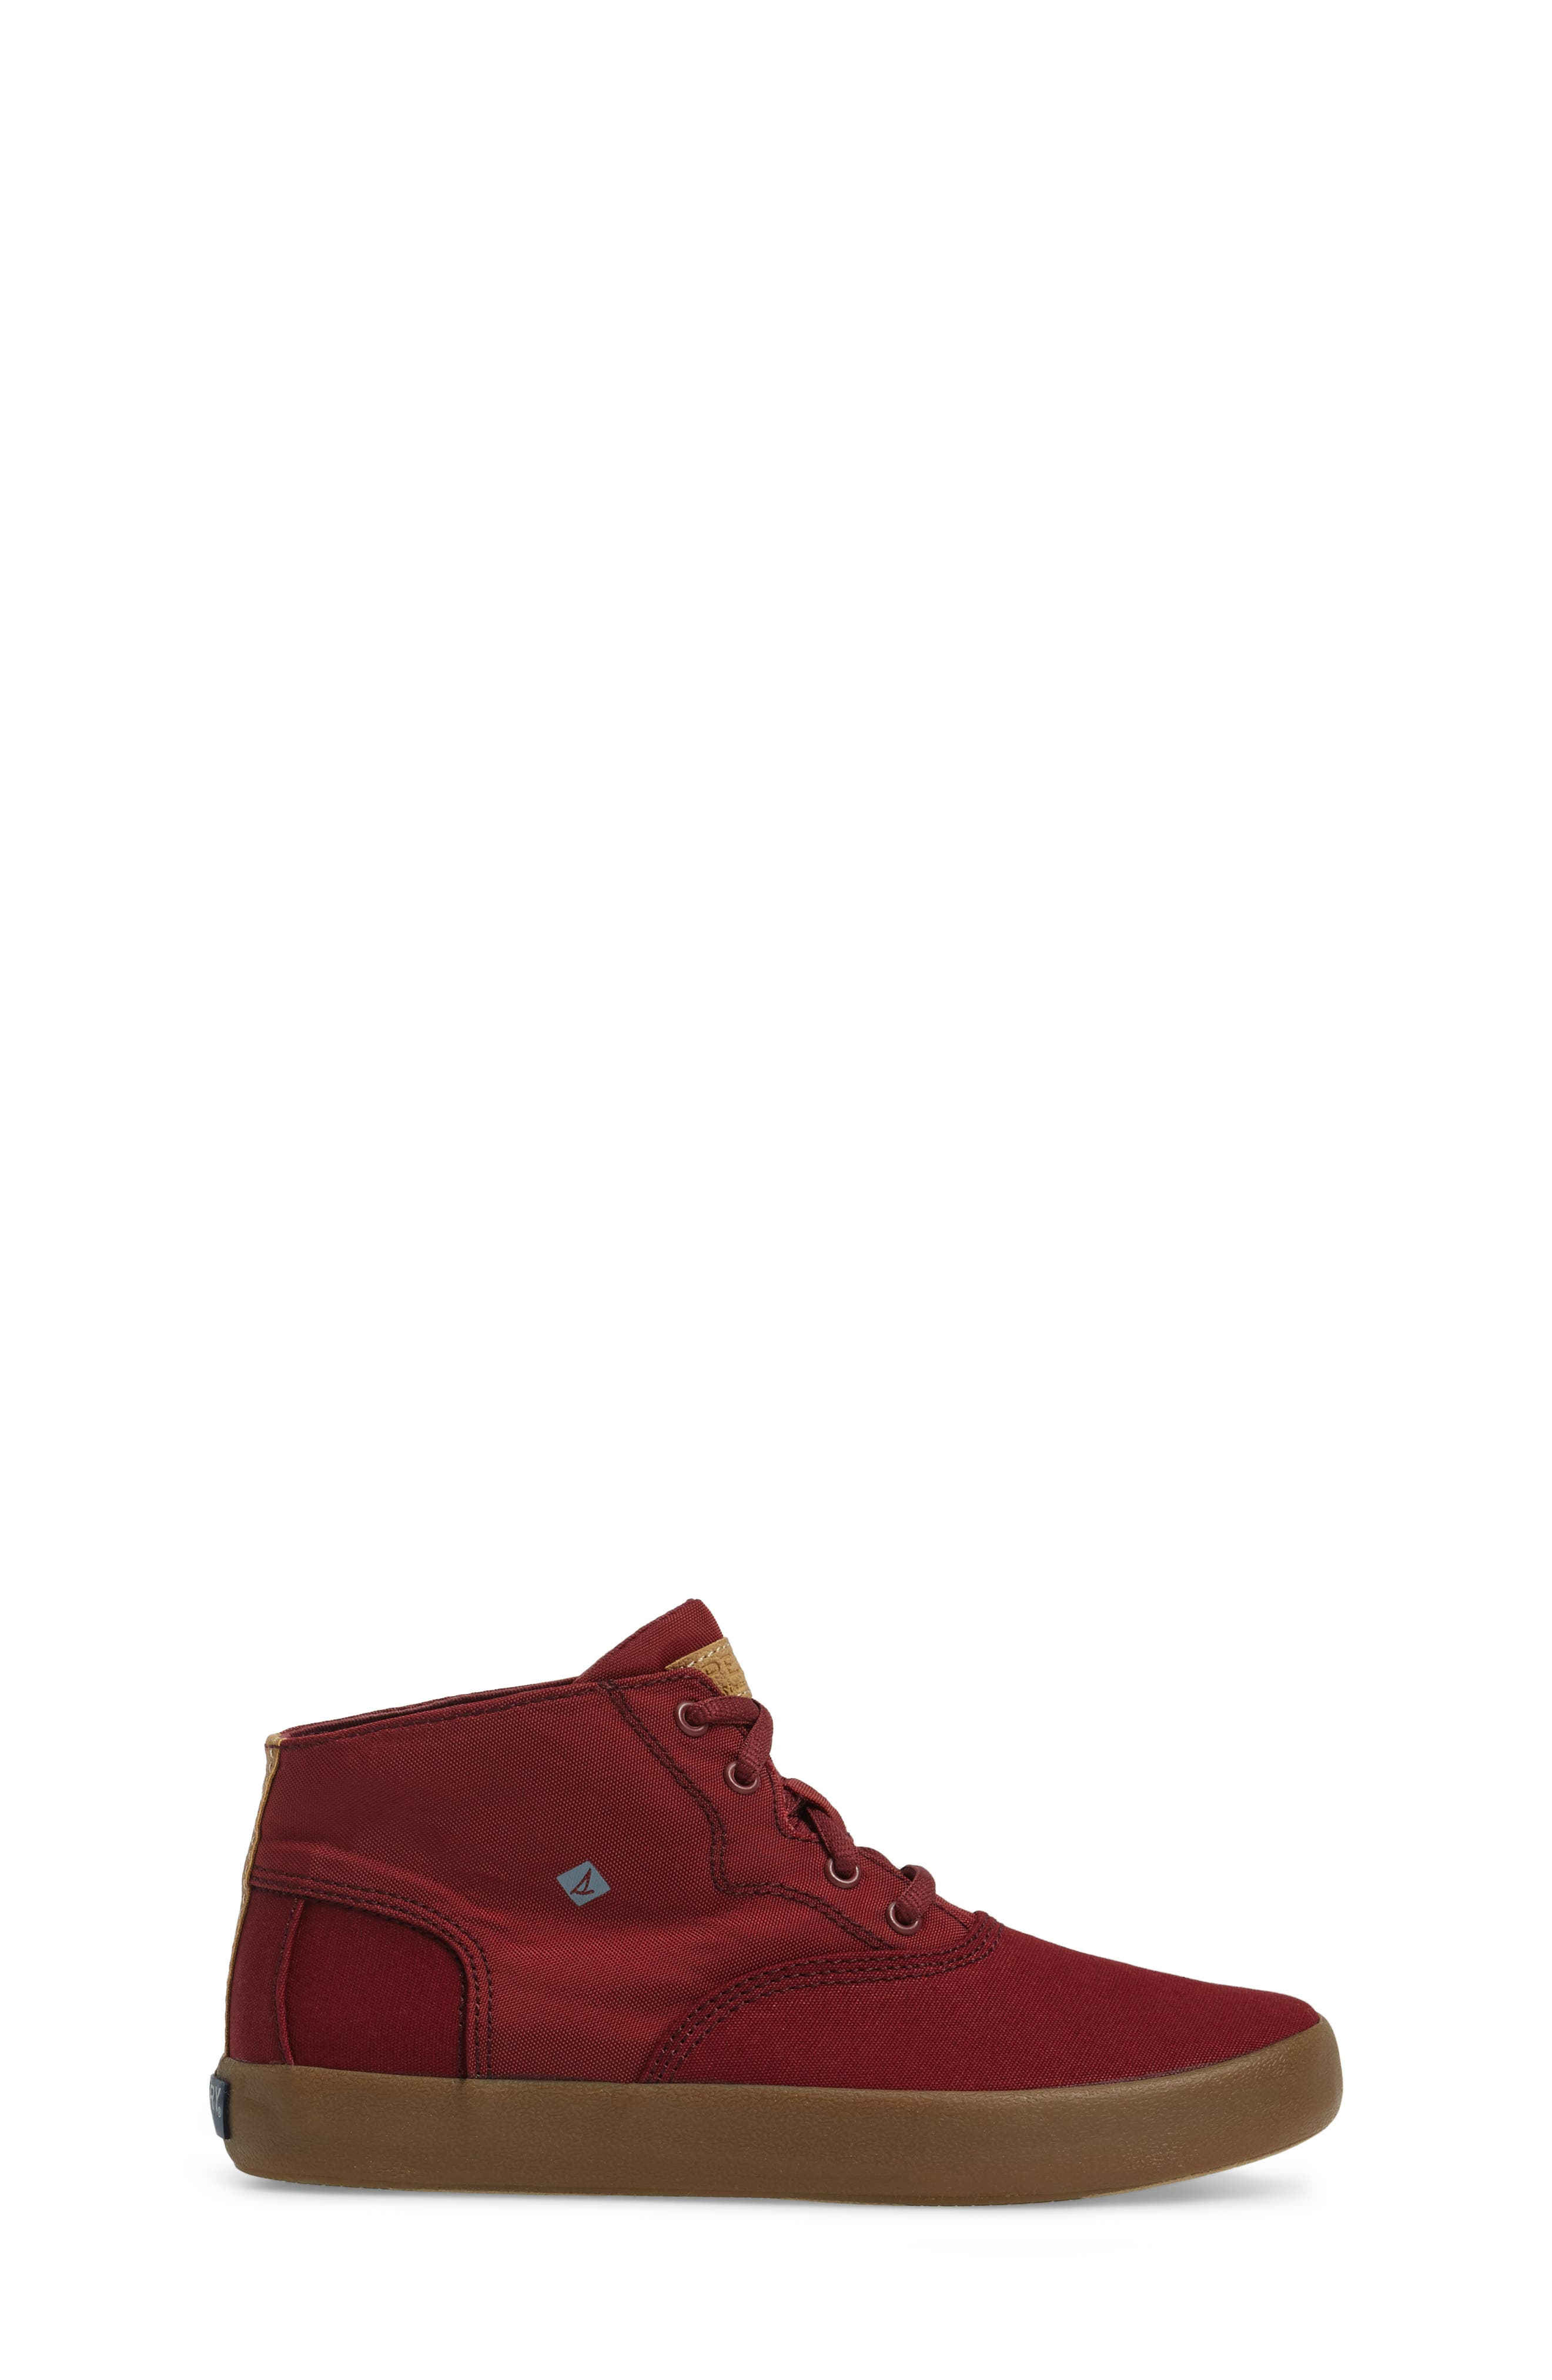 Alternate Image 3  - Sperry Kids Wahoo Mid-Top Sneaker (Little Kid & Big Kid)